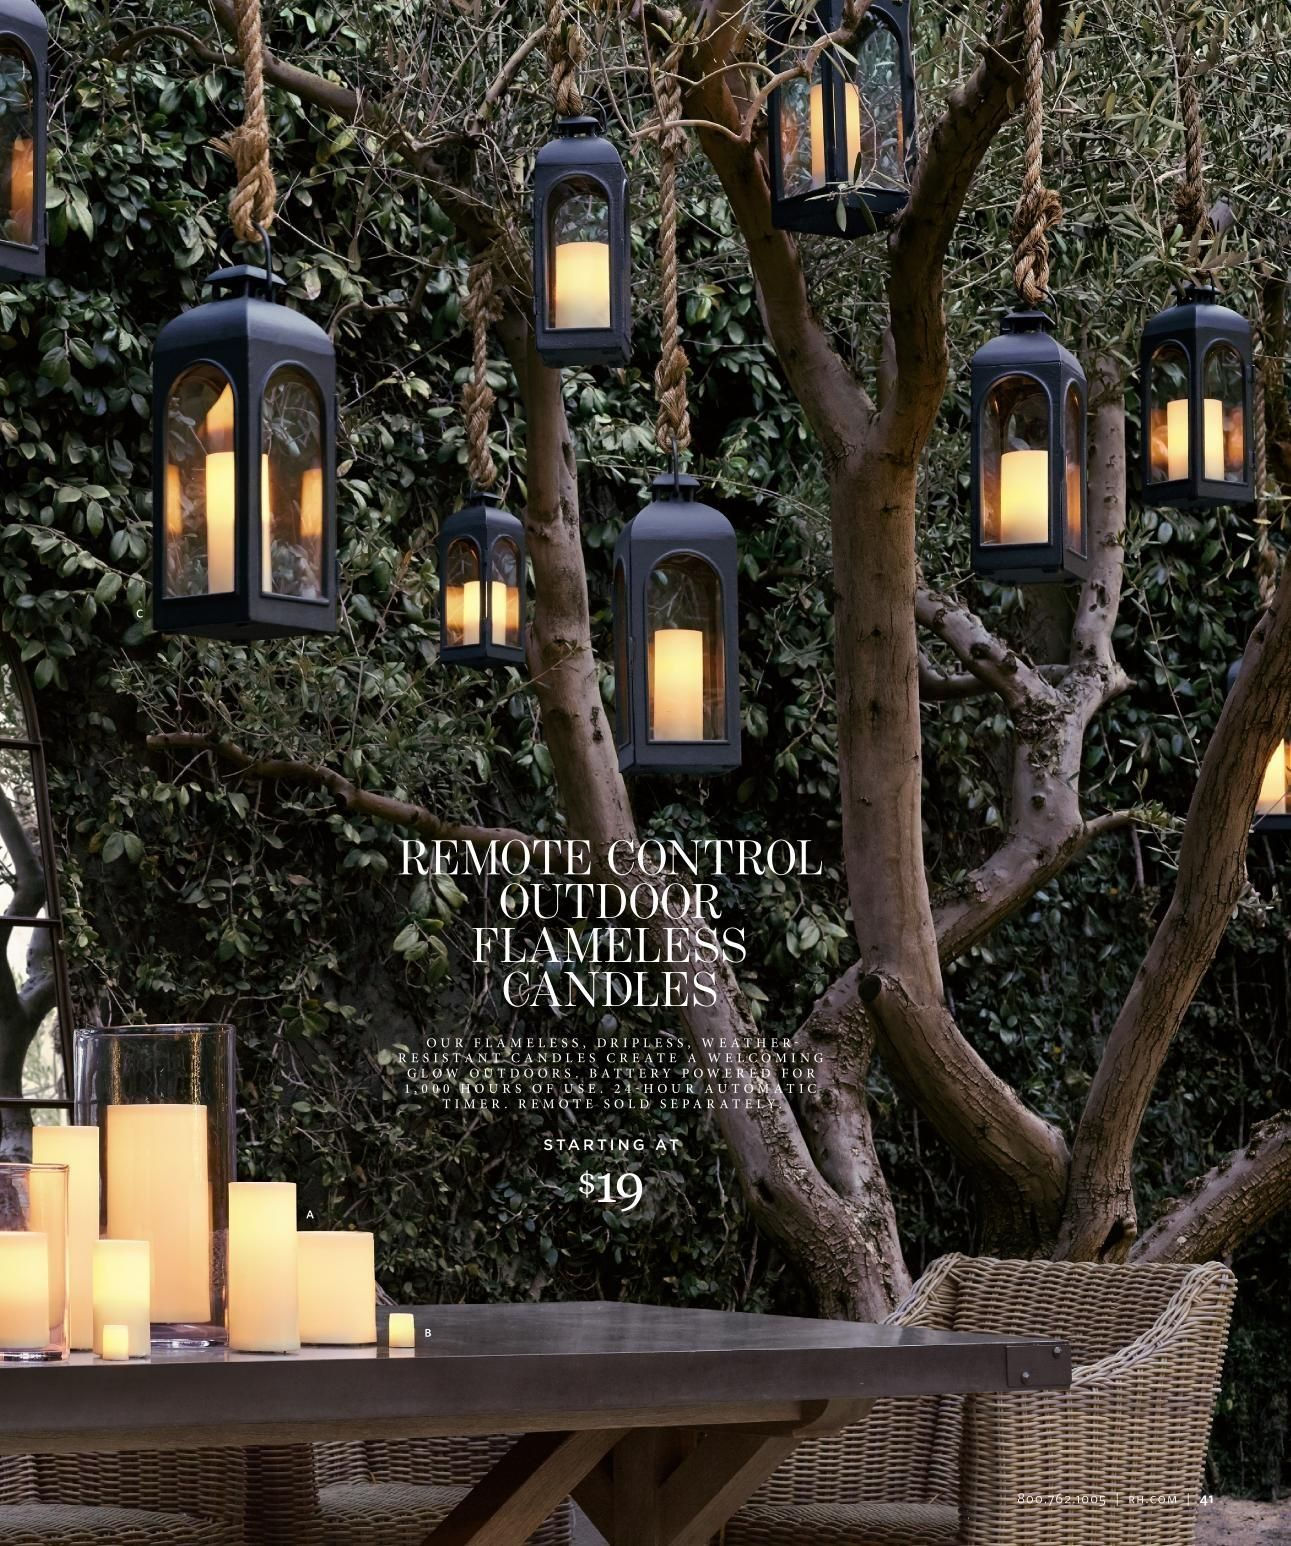 Lanterns Suspended From Trees Use Led Remote Control Candles Inside So They Light Instantly With The Fli Diy Outdoor Lighting Outdoor Lanterns Outdoor Trees